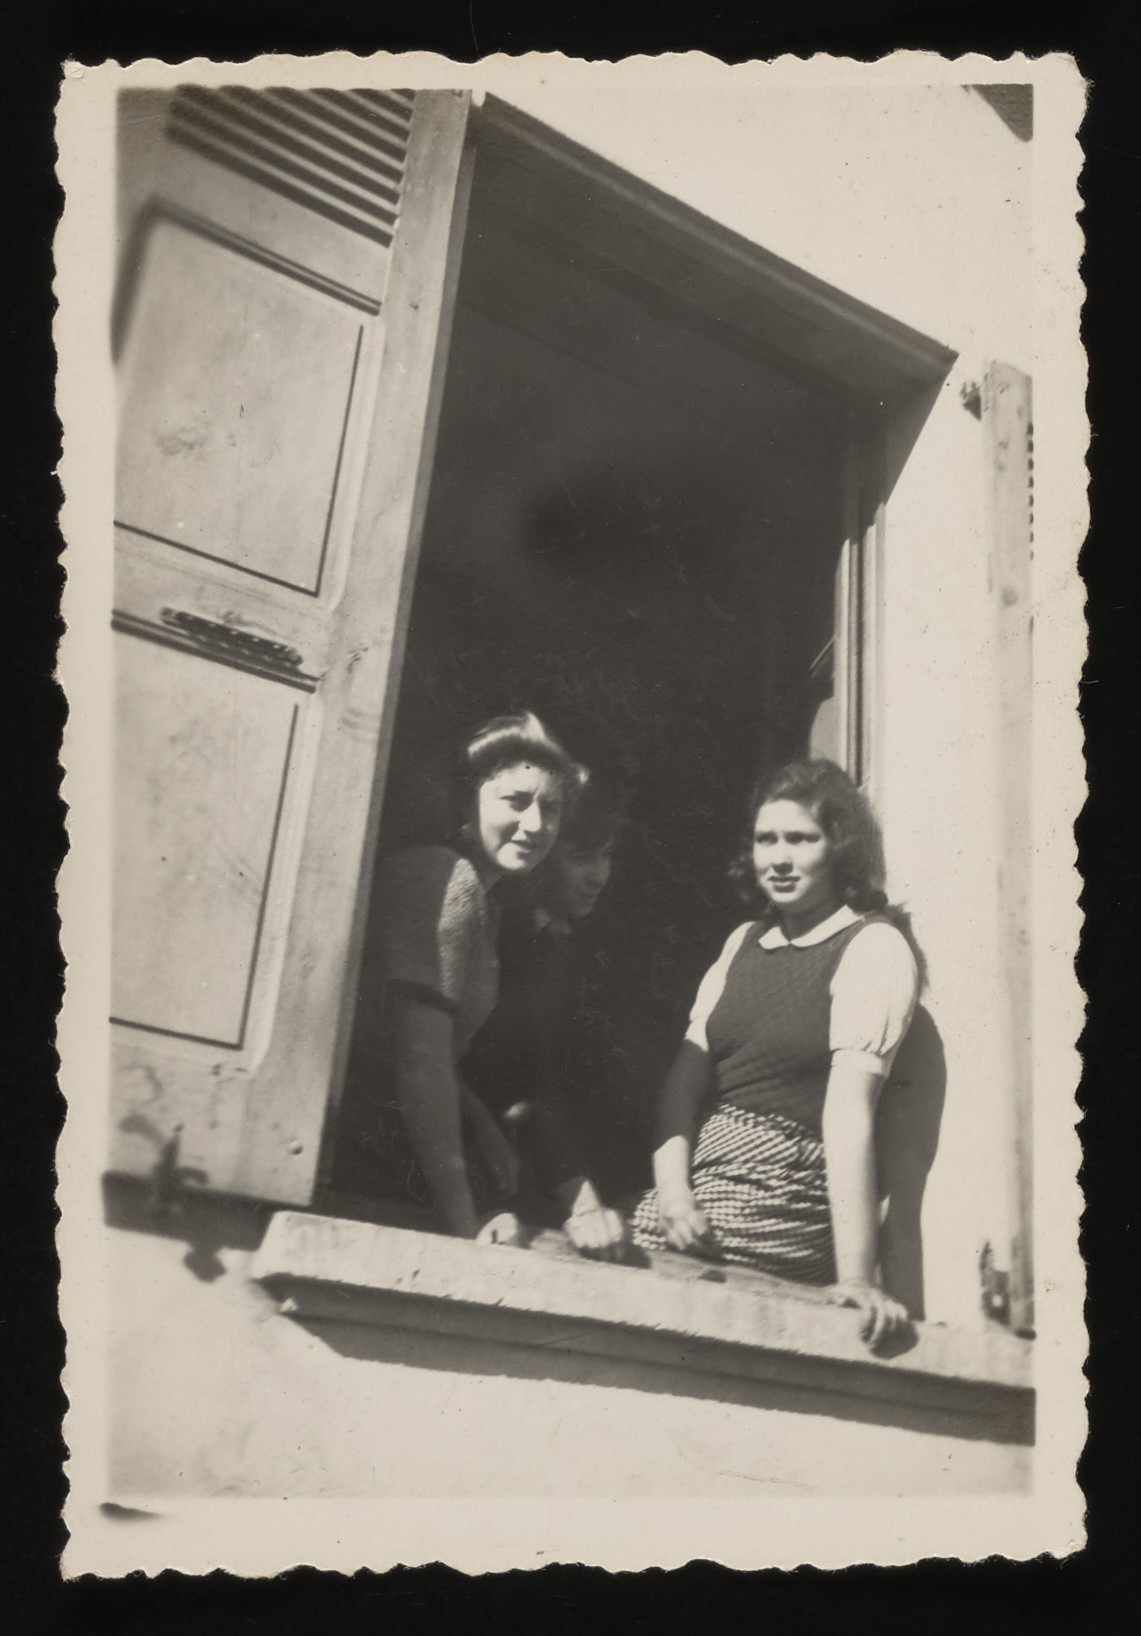 Three Jewish youths pose in the window of their residence while hiding in Le Chambon.